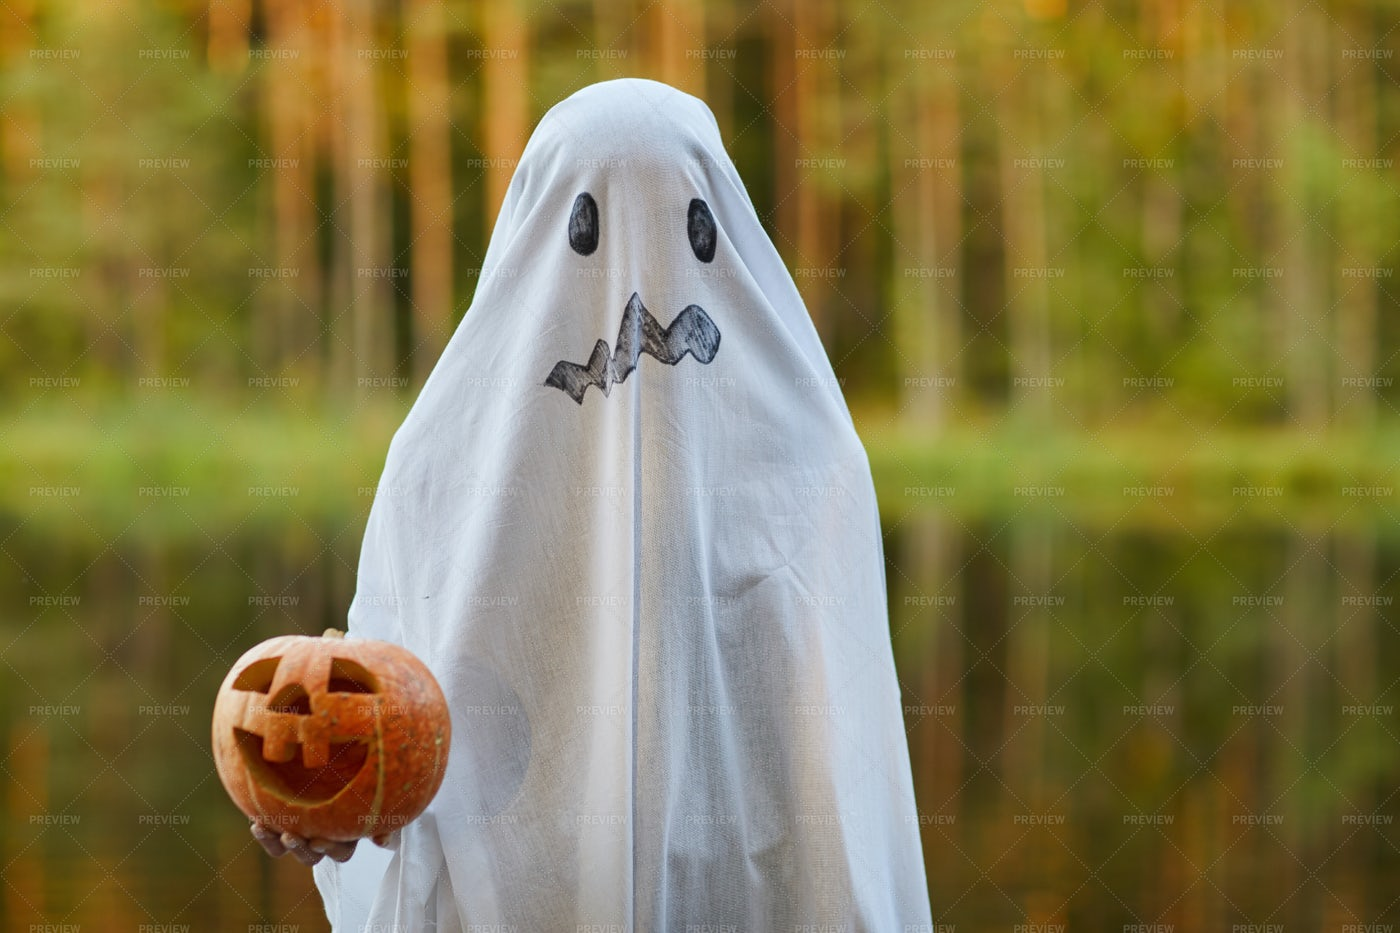 Child In Ghost Costume On Halloween: Stock Photos